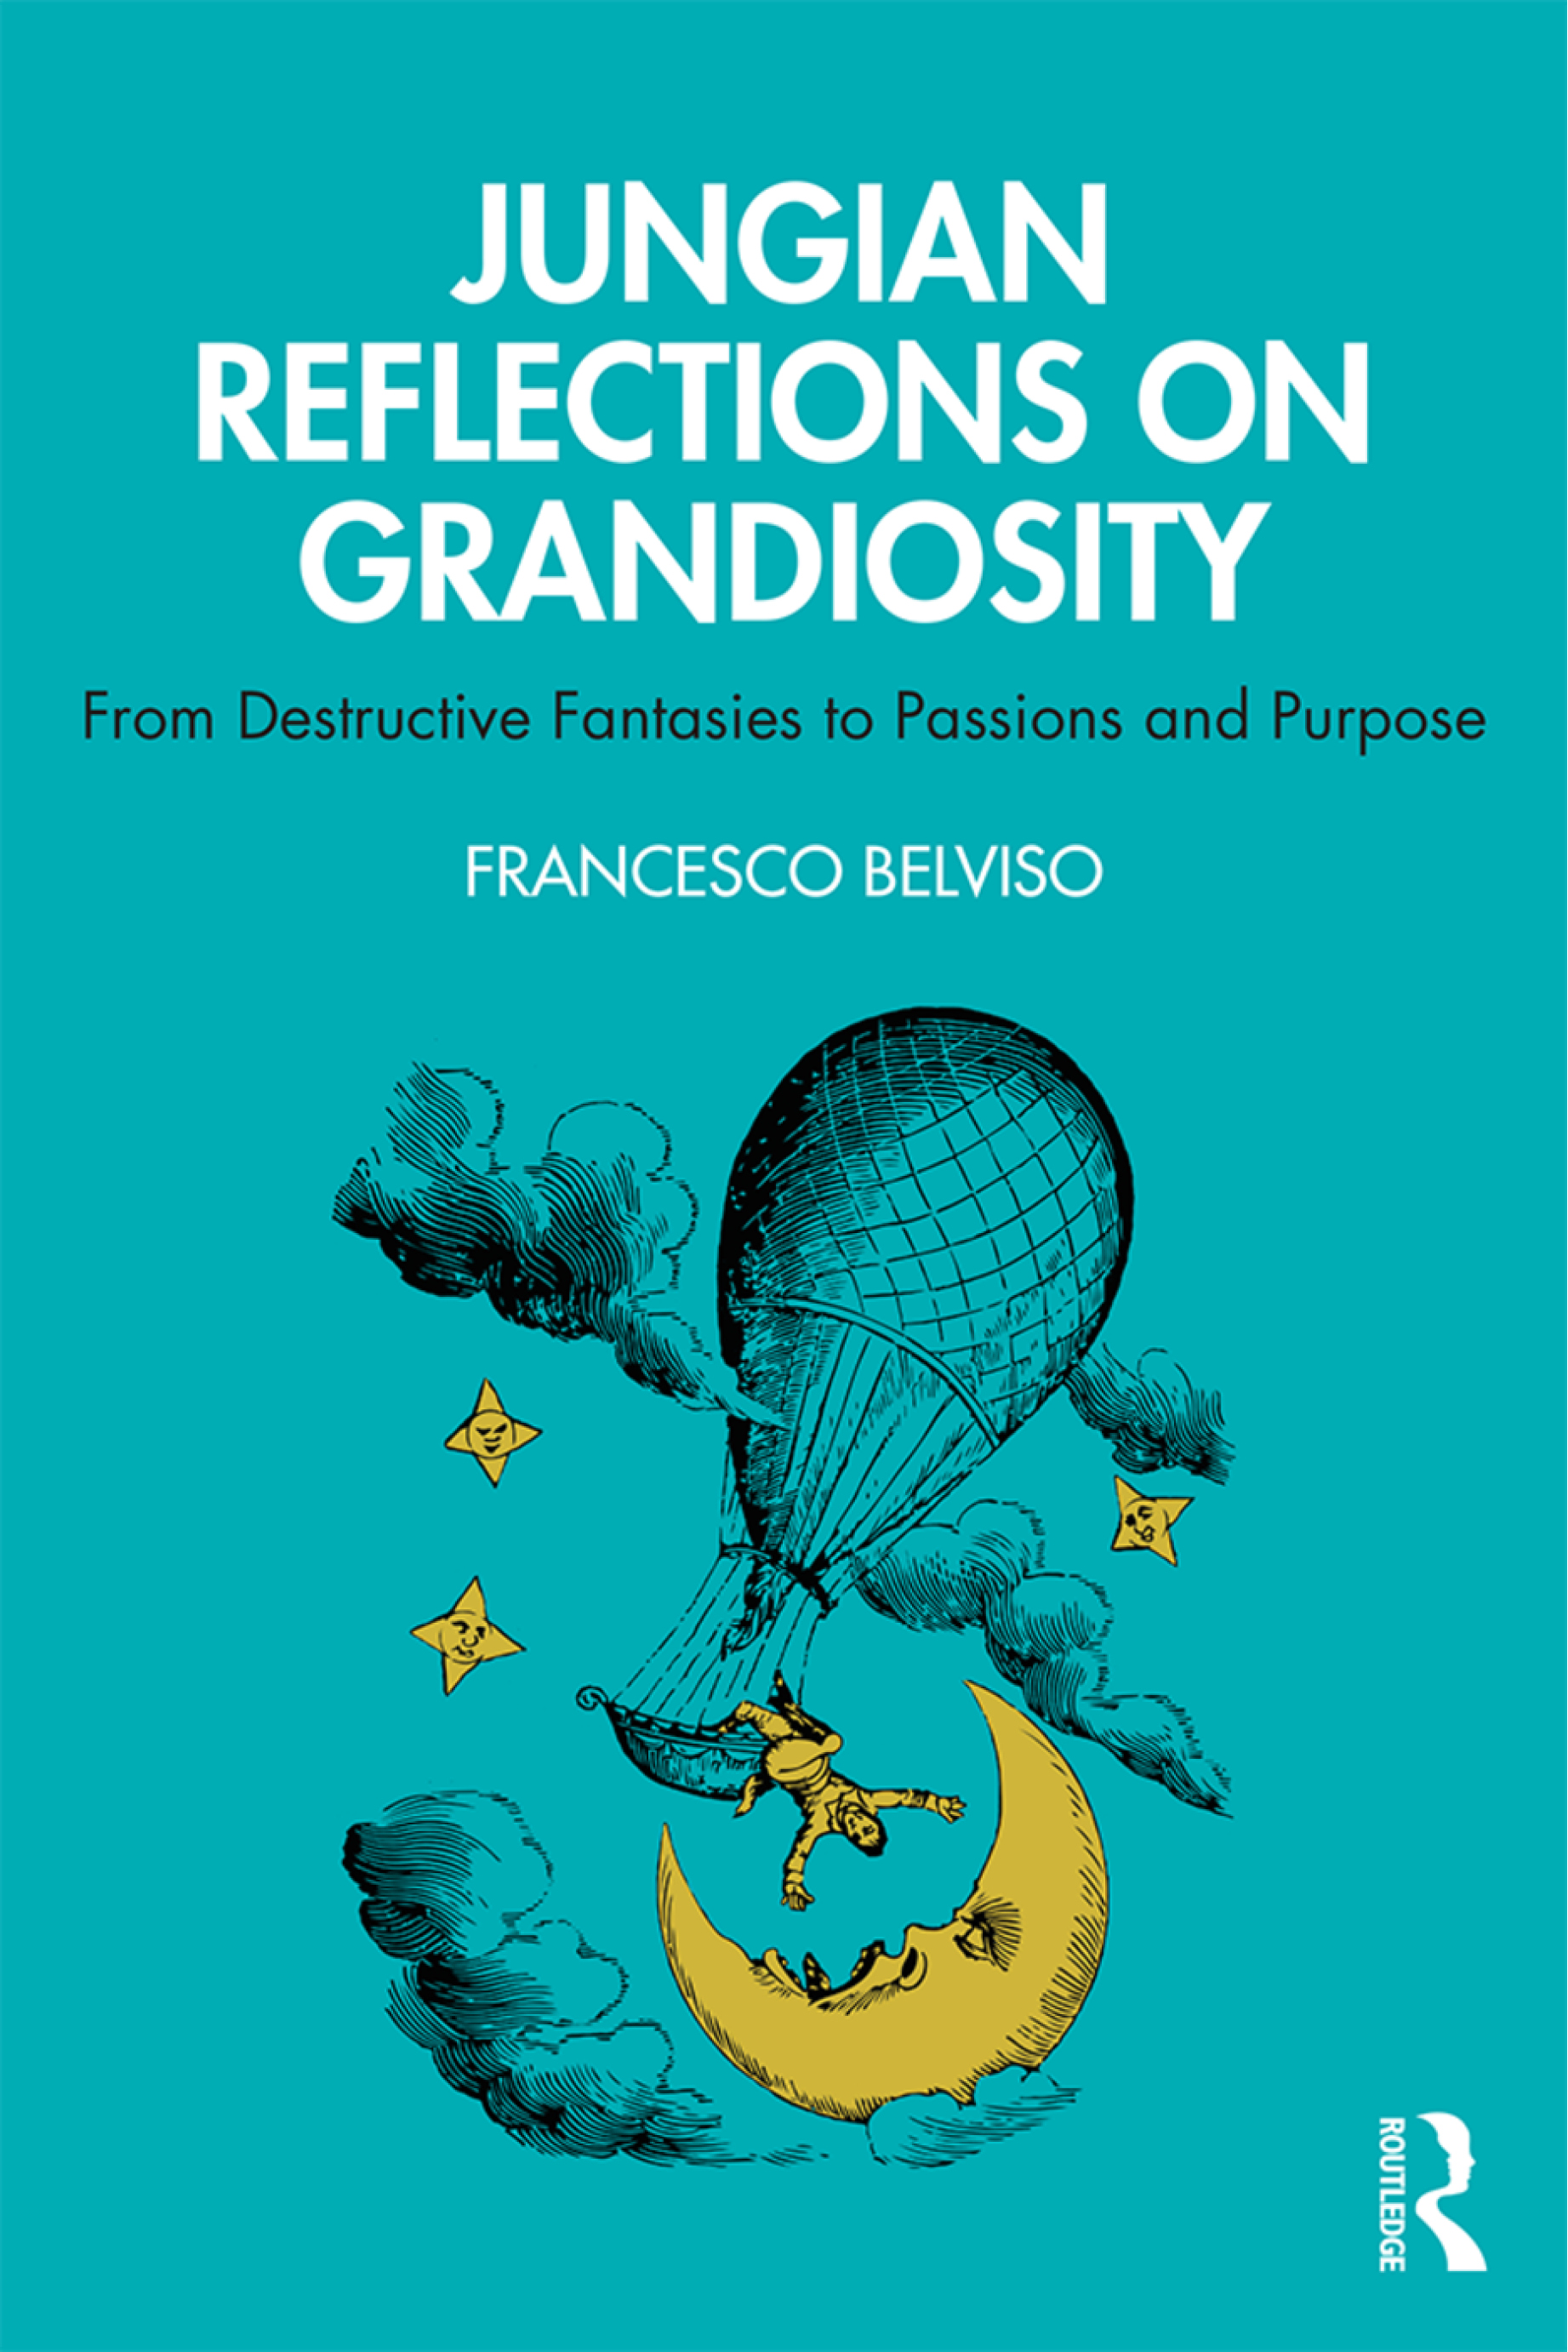 Jungian Reflections On Grandiosity: From Destructive Fantasies to Passions and Purpose book cover